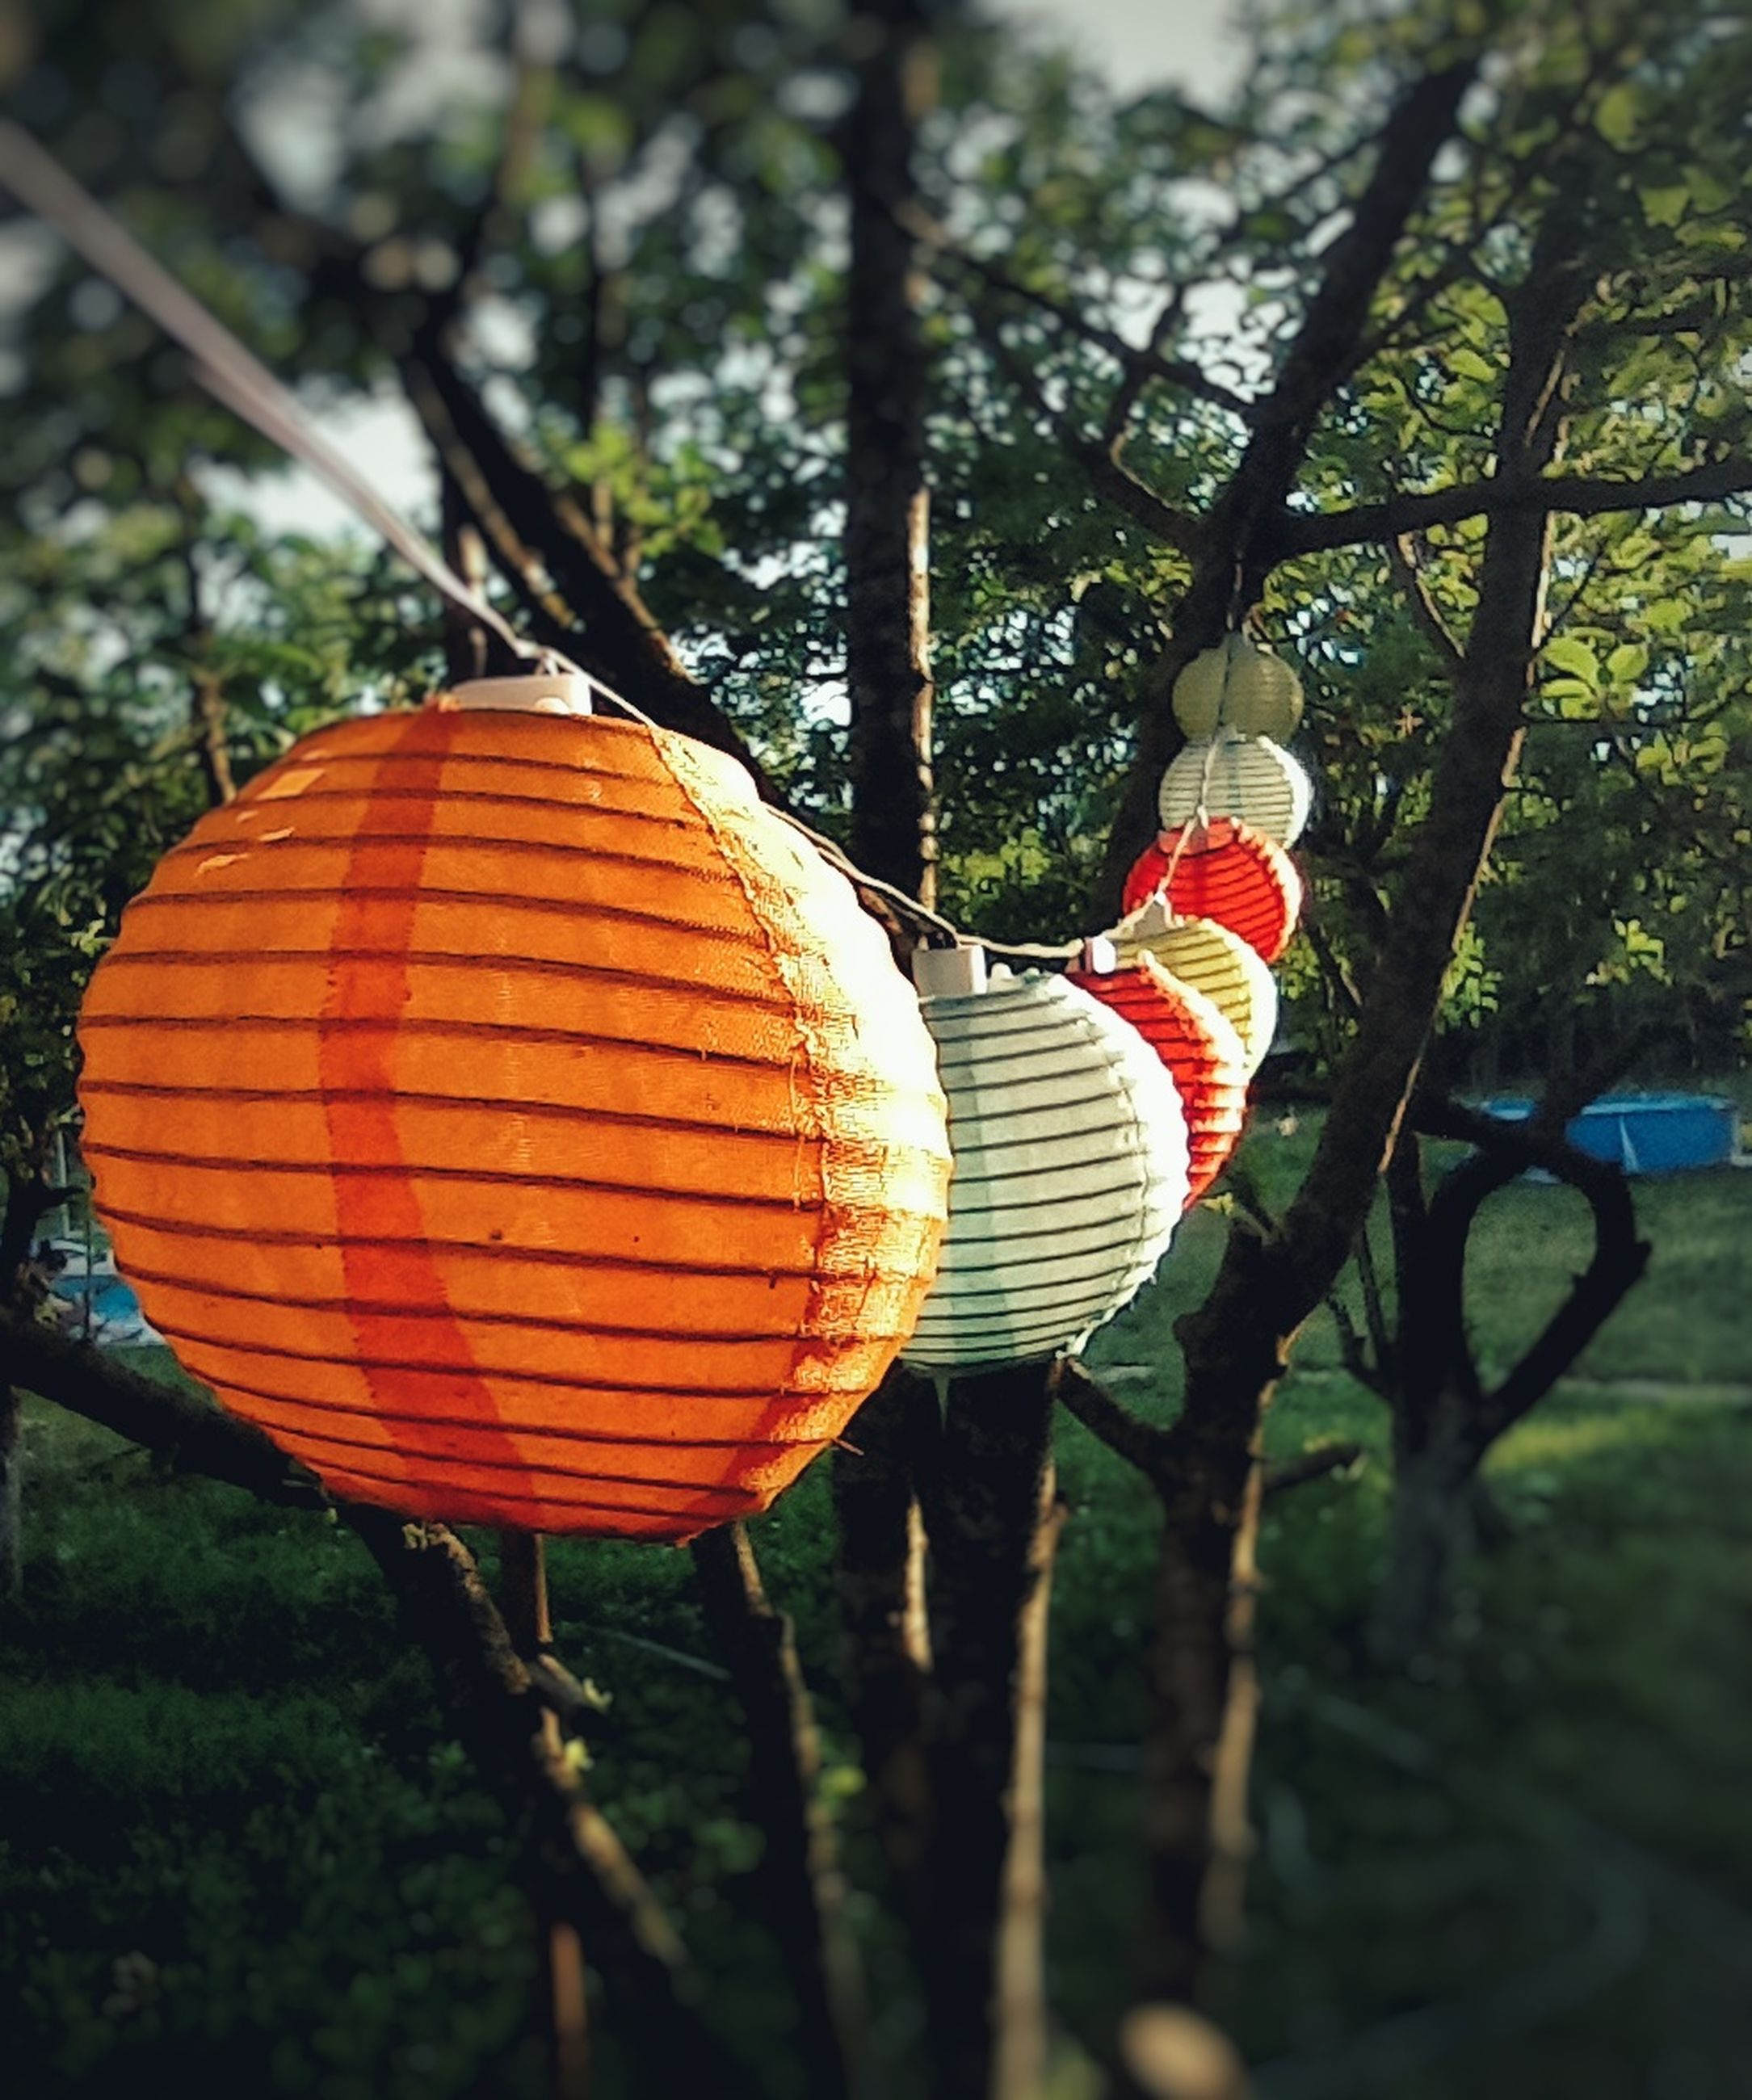 tree, plant, flower, leaf, hanging, nature, autumn, no people, day, celebration, yellow, outdoors, decoration, lantern, growth, branch, orange color, holiday, tradition, focus on foreground